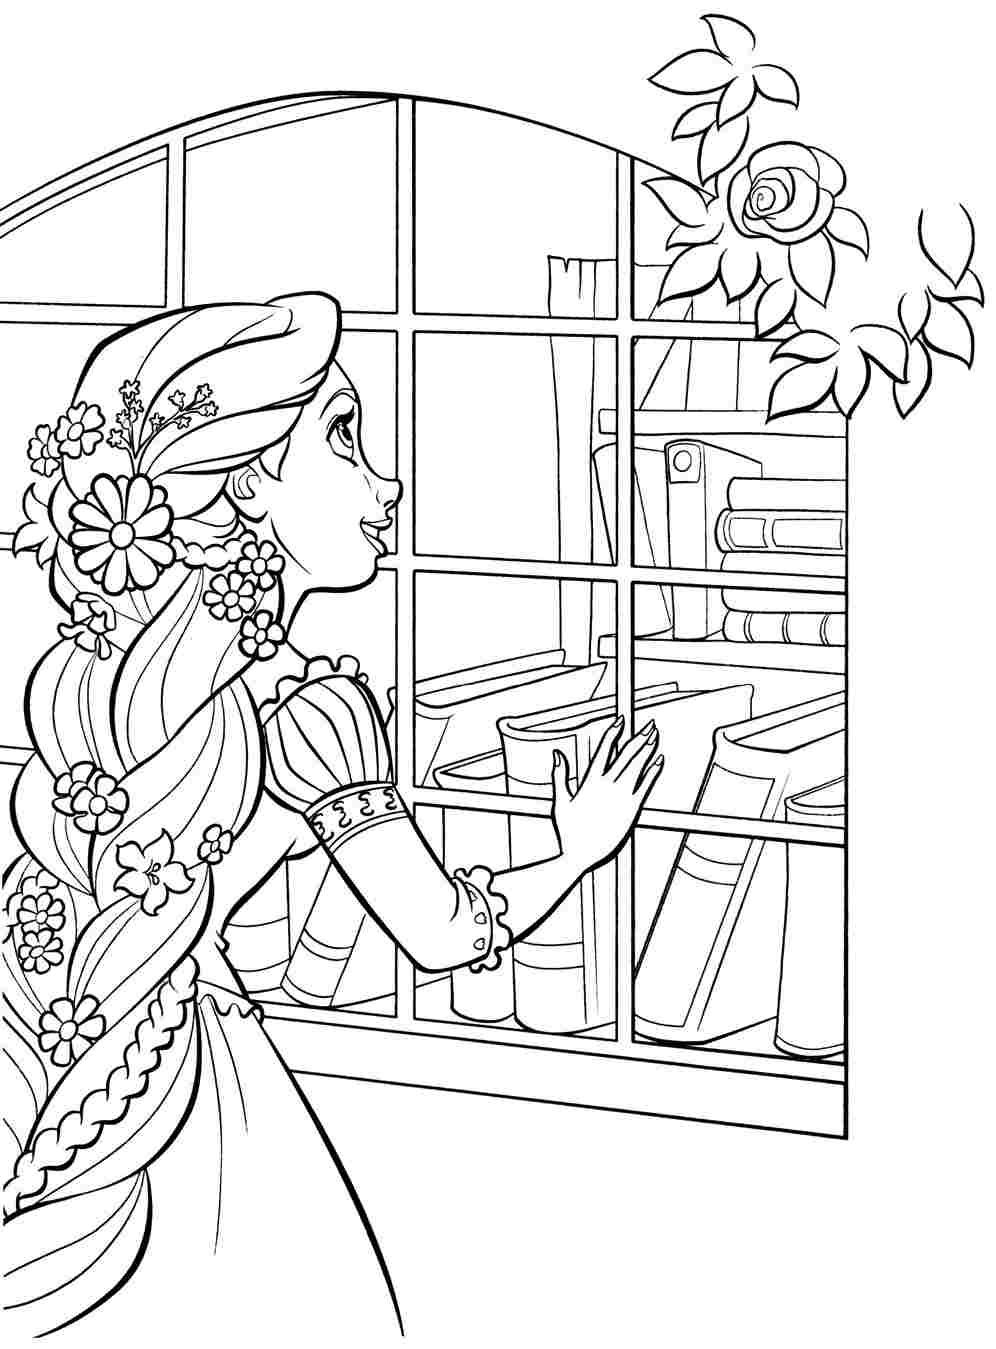 printable free coloring pages disney princess tangled rapunzel for ...